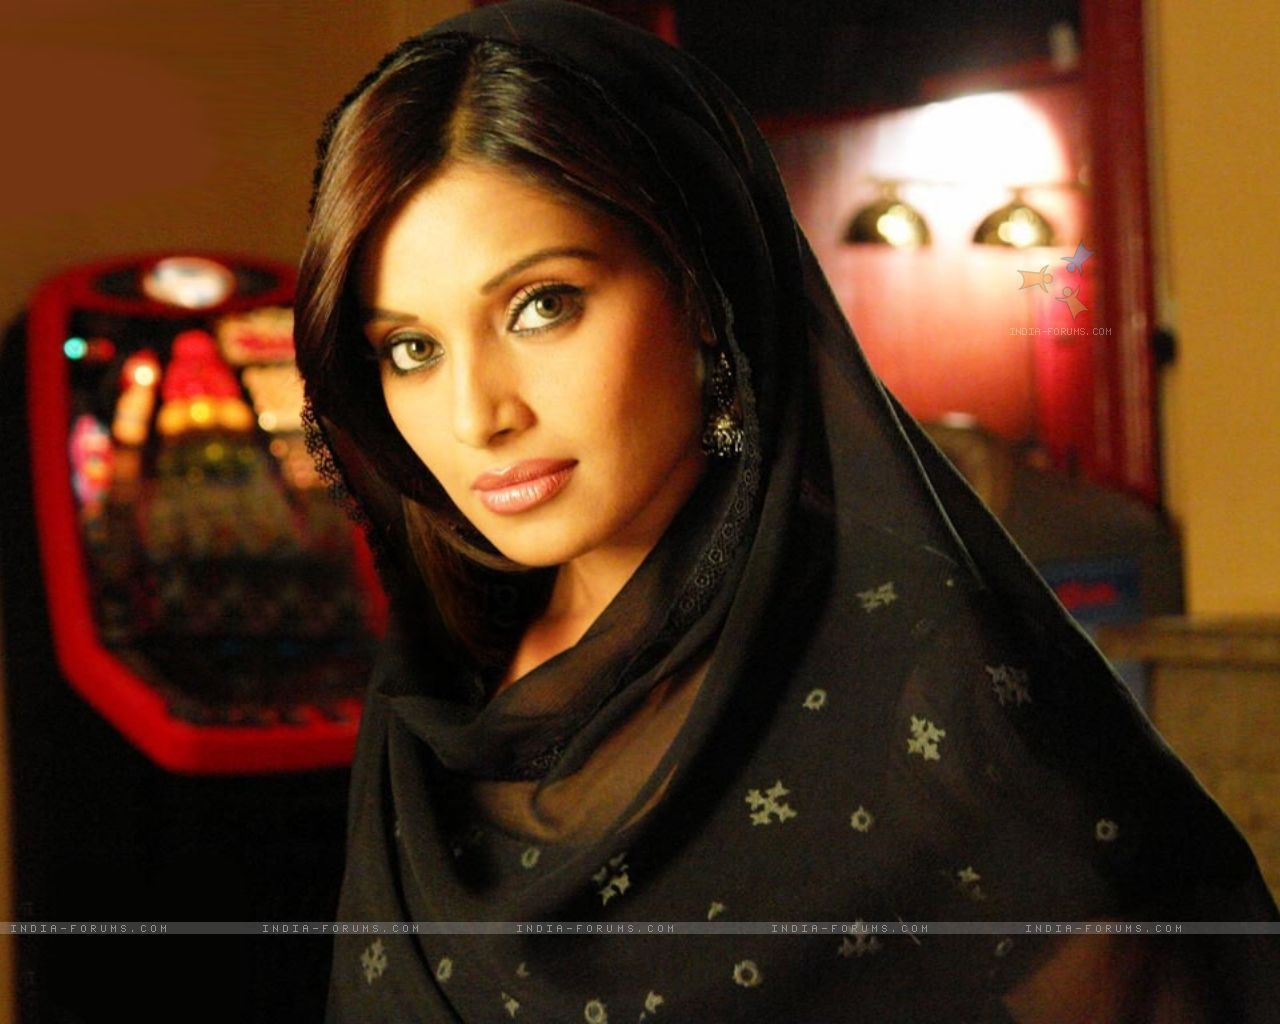 Bipasha basu wallpaper, images for bipasha basu - HD Wallpapers